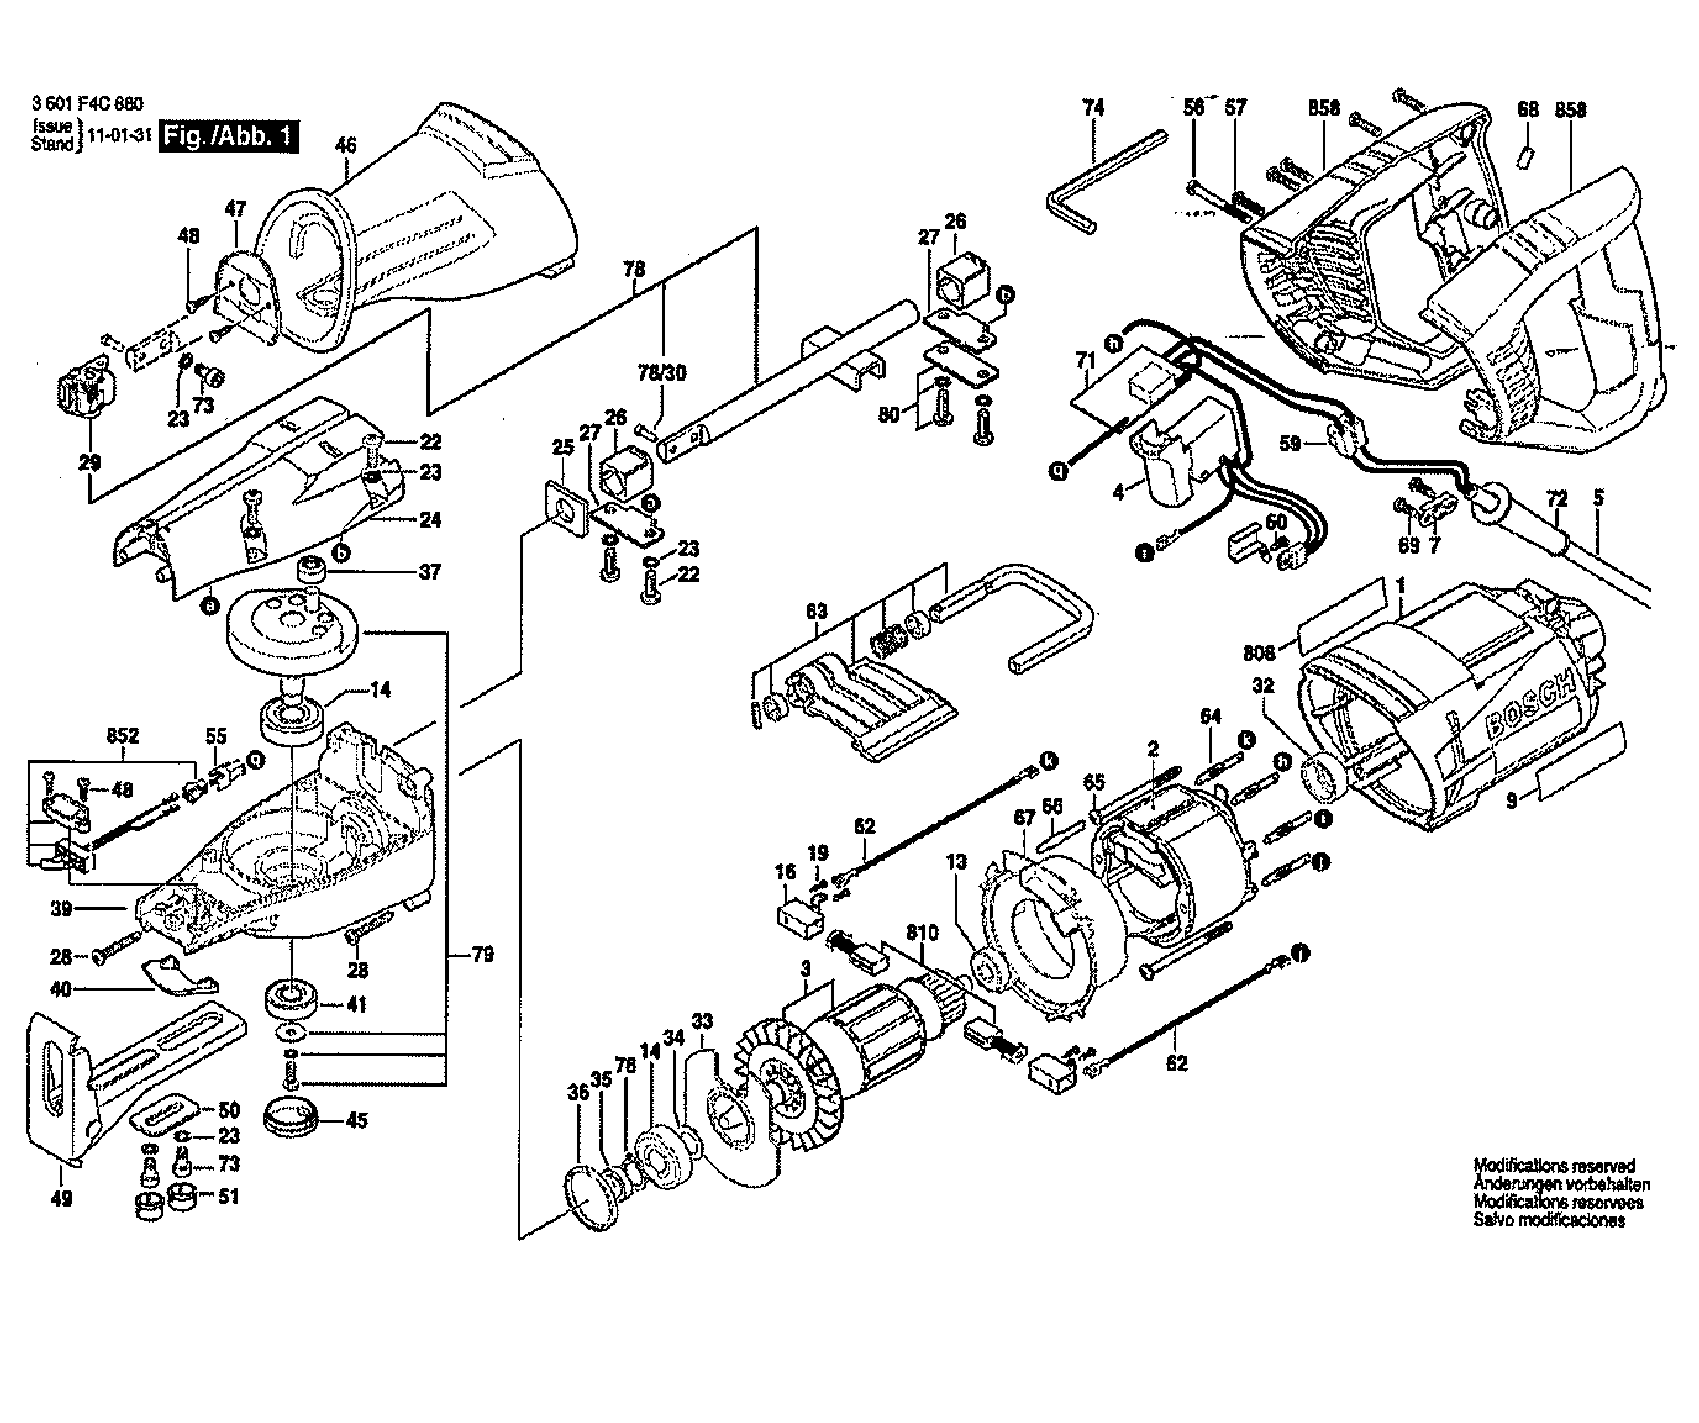 Bosch model RS7 saw reciprocating genuine parts